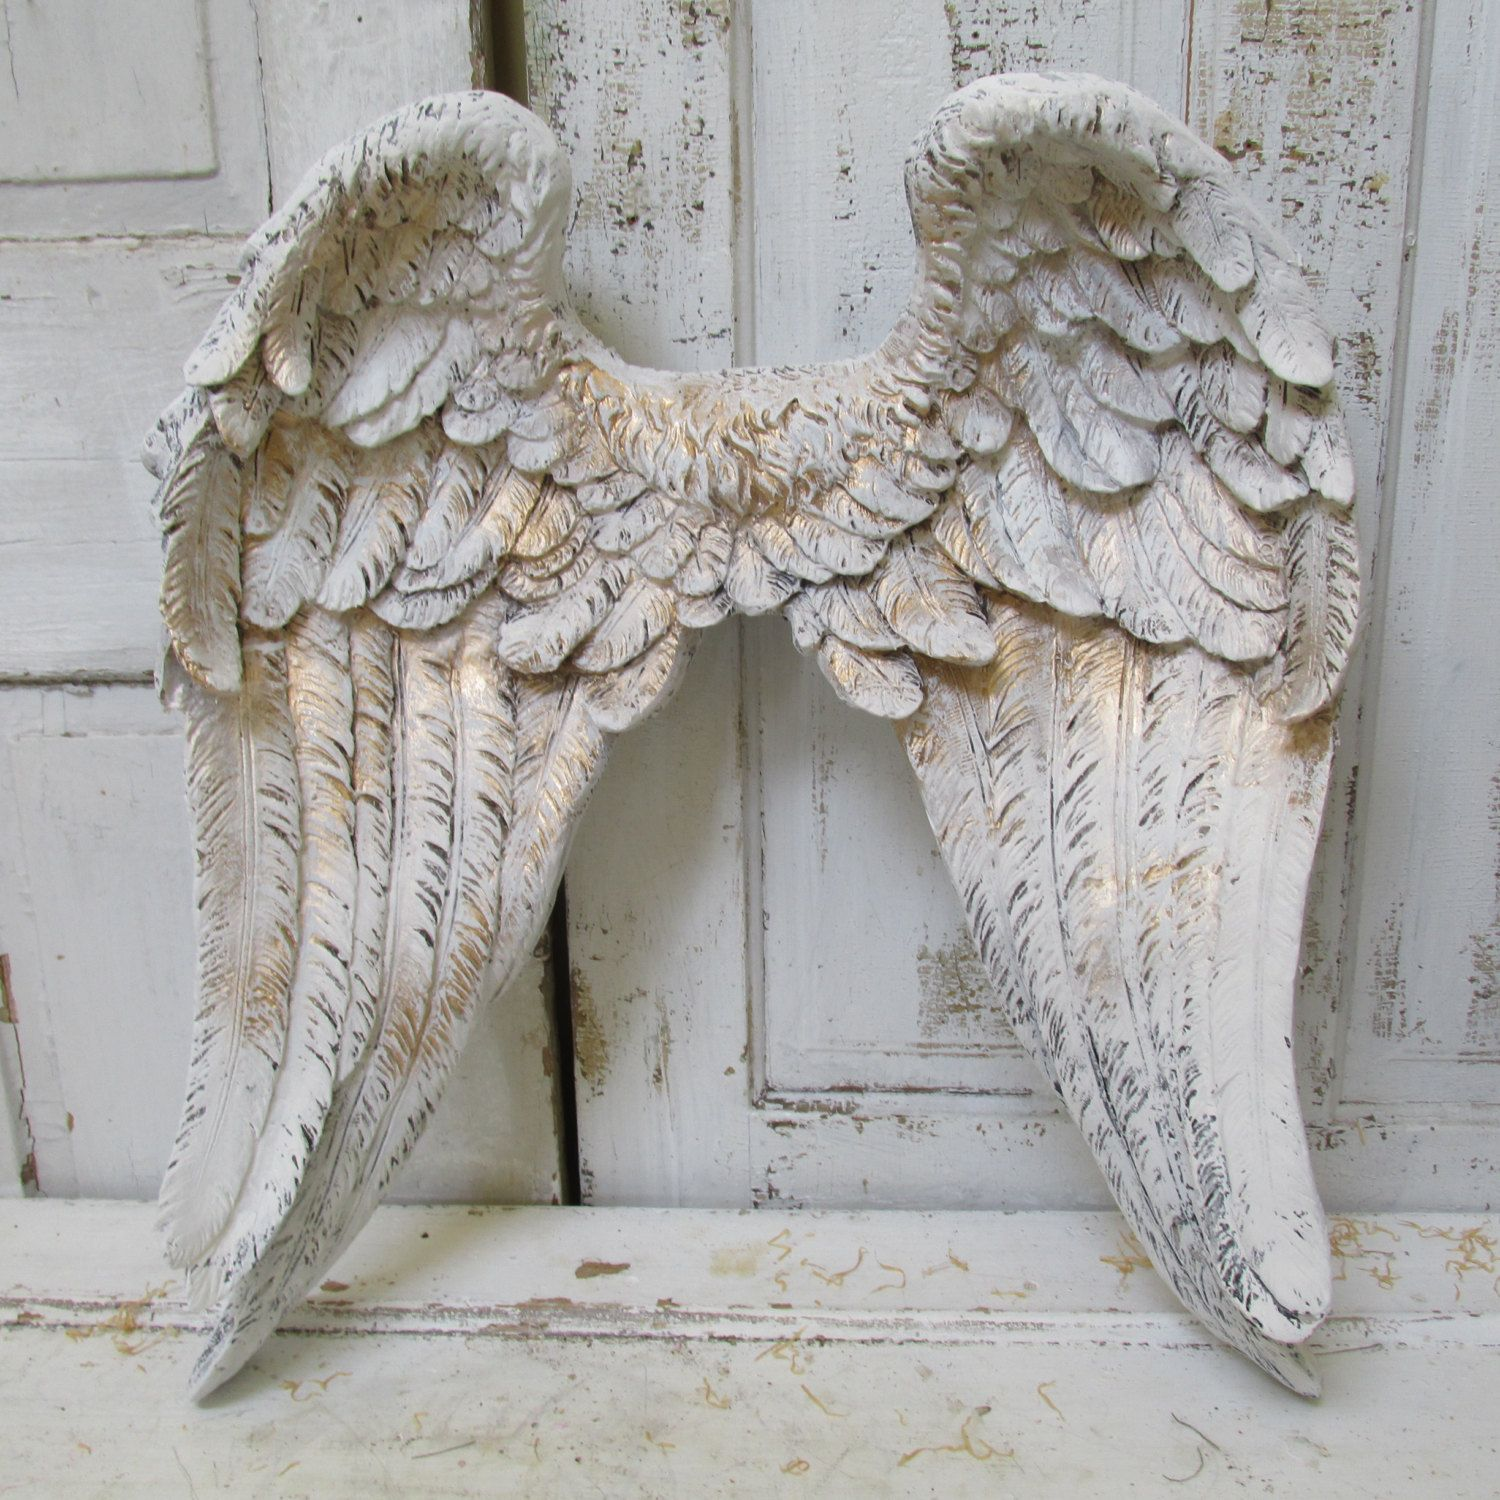 Large angel wings wall sculpture hand painted white accented large angel wings wall sculpture hand painted white accented amipublicfo Gallery